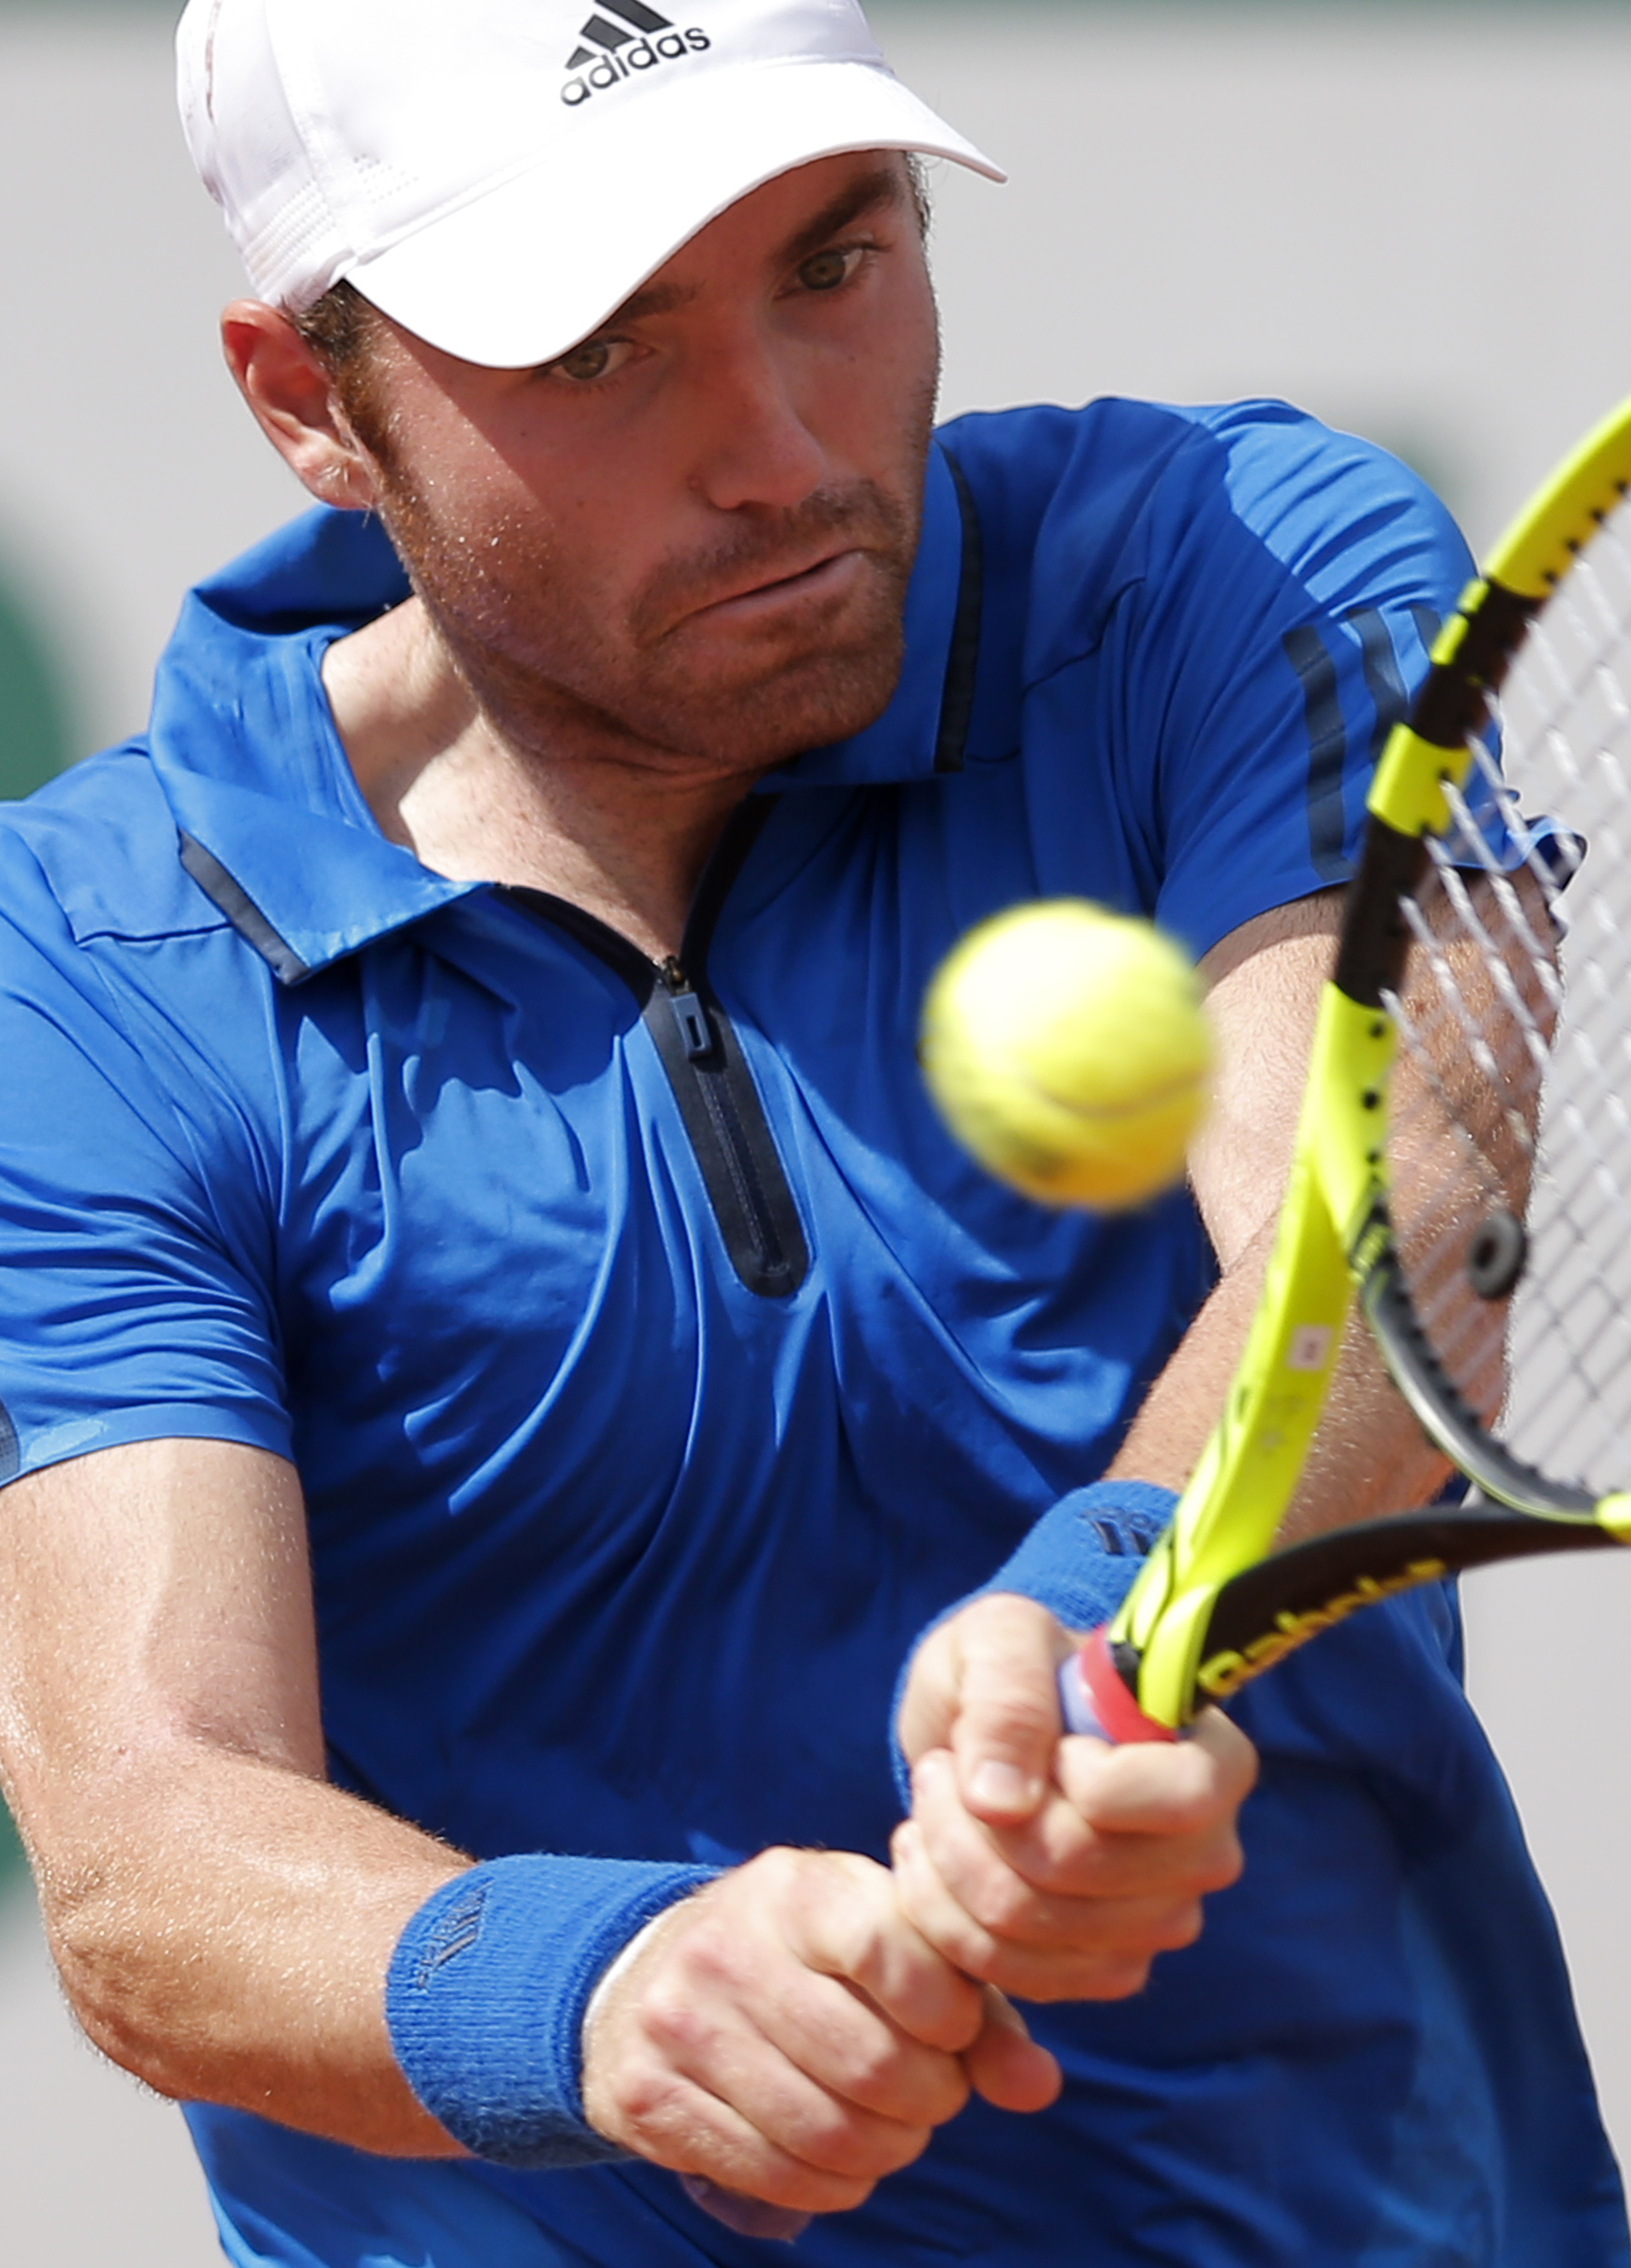 Bjorn Fratangelo of the U.S. returns the ball to France's Richard Gasquet during their second round match of the French Open tennis tournament at the Roland Garros stadium, Wednesday, May 25, 2016 in Paris.  (AP Photo/Christophe Ena)